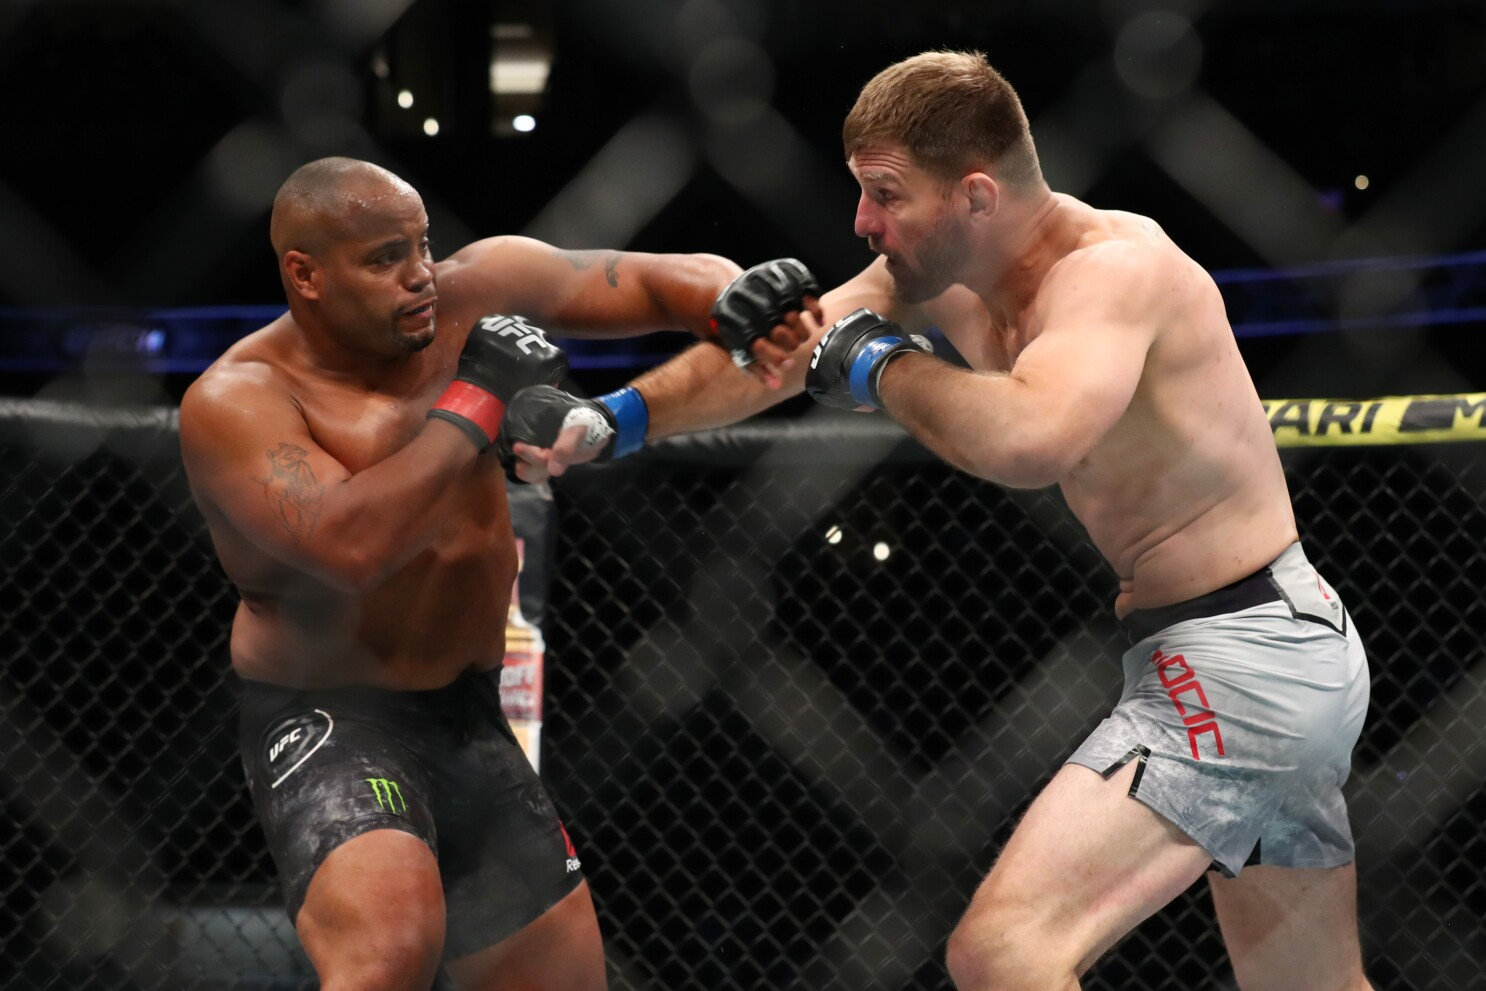 UFC 241 Stipe Miocic KOs Daniel Cormier for heavyweight belt